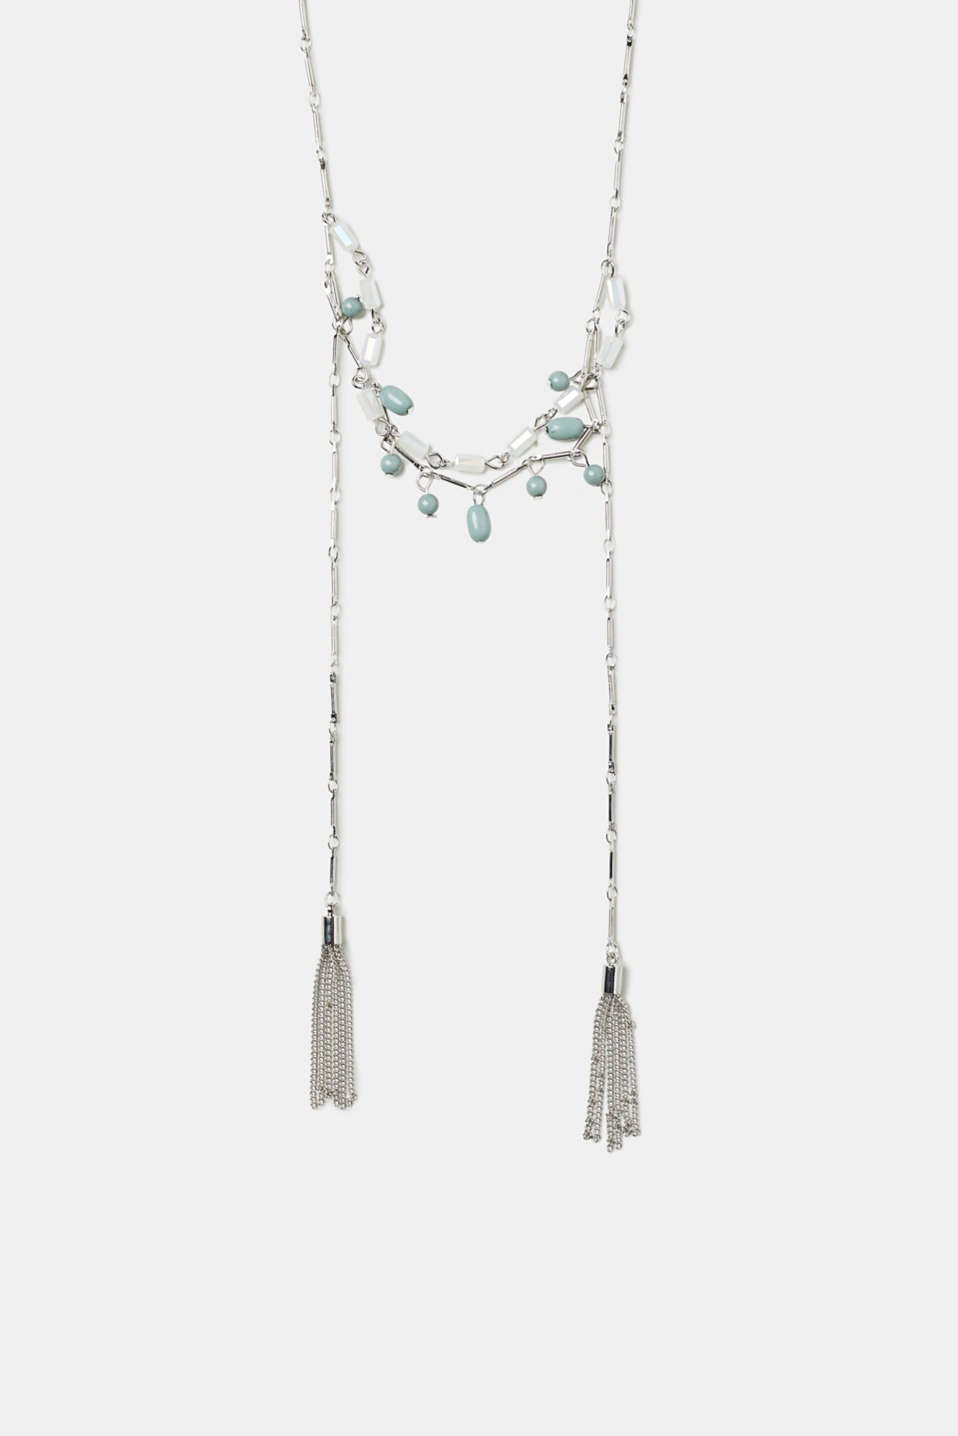 Esprit - Link chain with stones and metal tassels